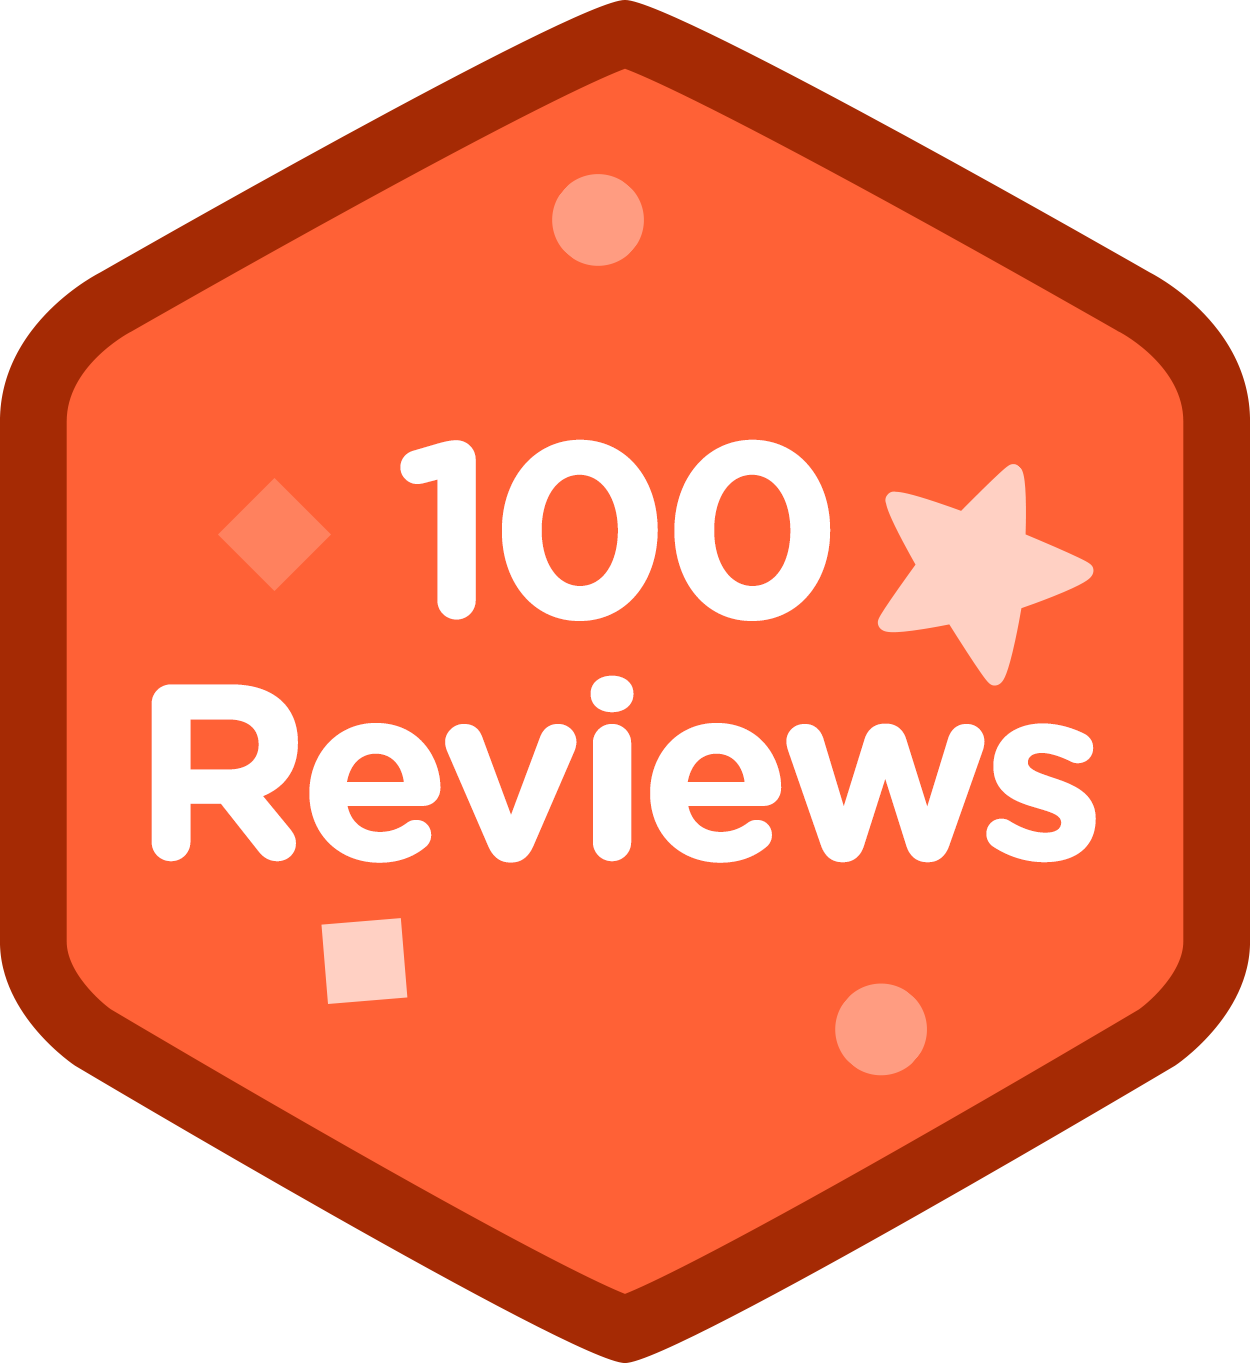 100th Techdegree Peer Review